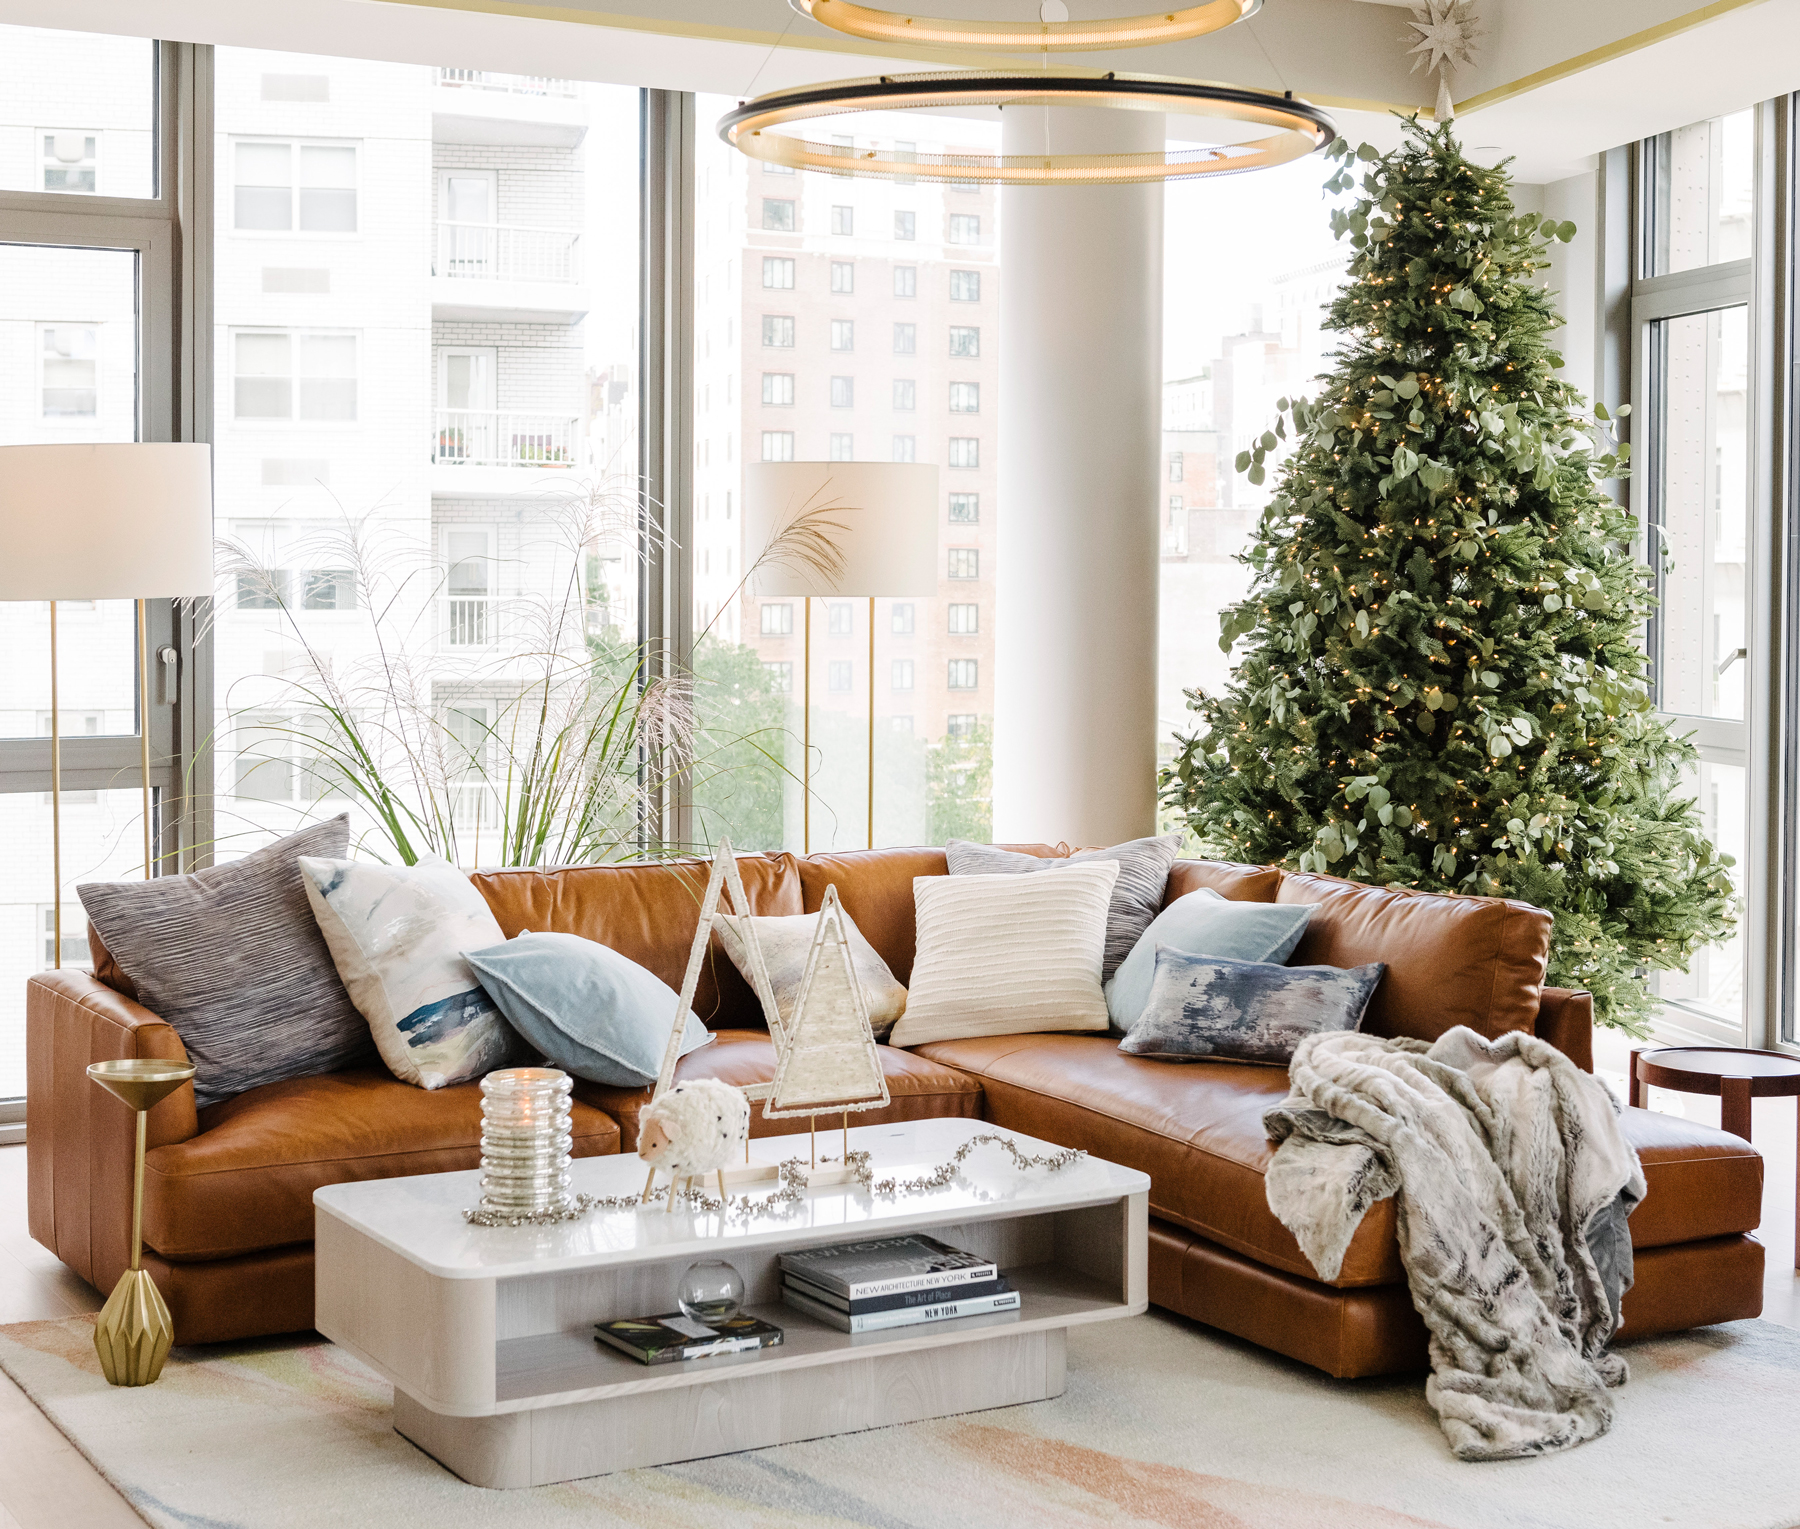 Trendy Holiday Decorating Ideas From West Elm\'s Holiday ...